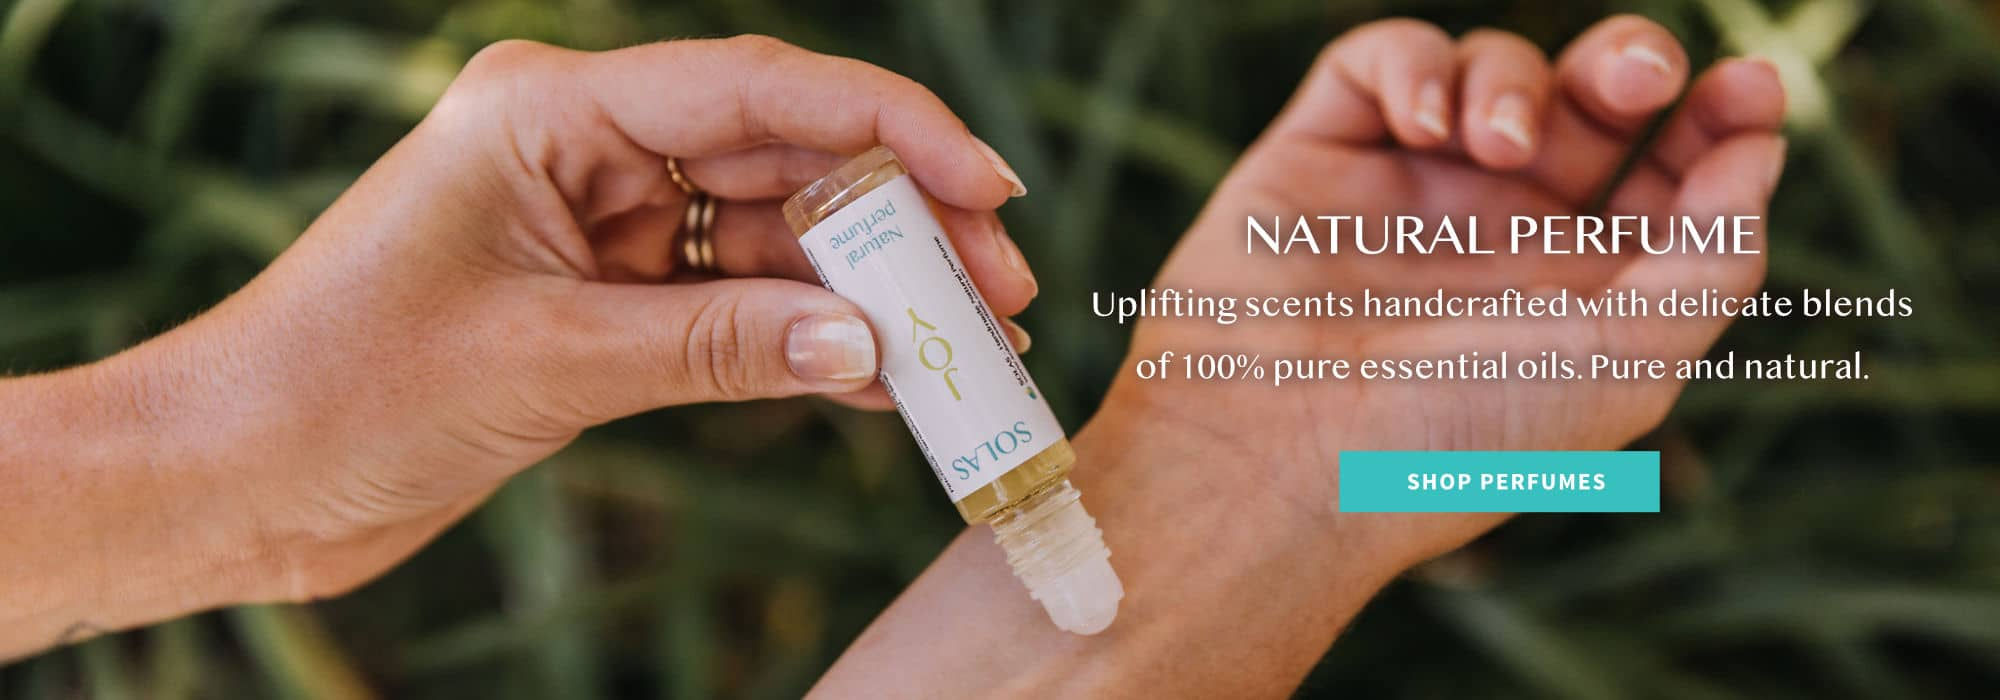 Solas Essential Natural Perfume